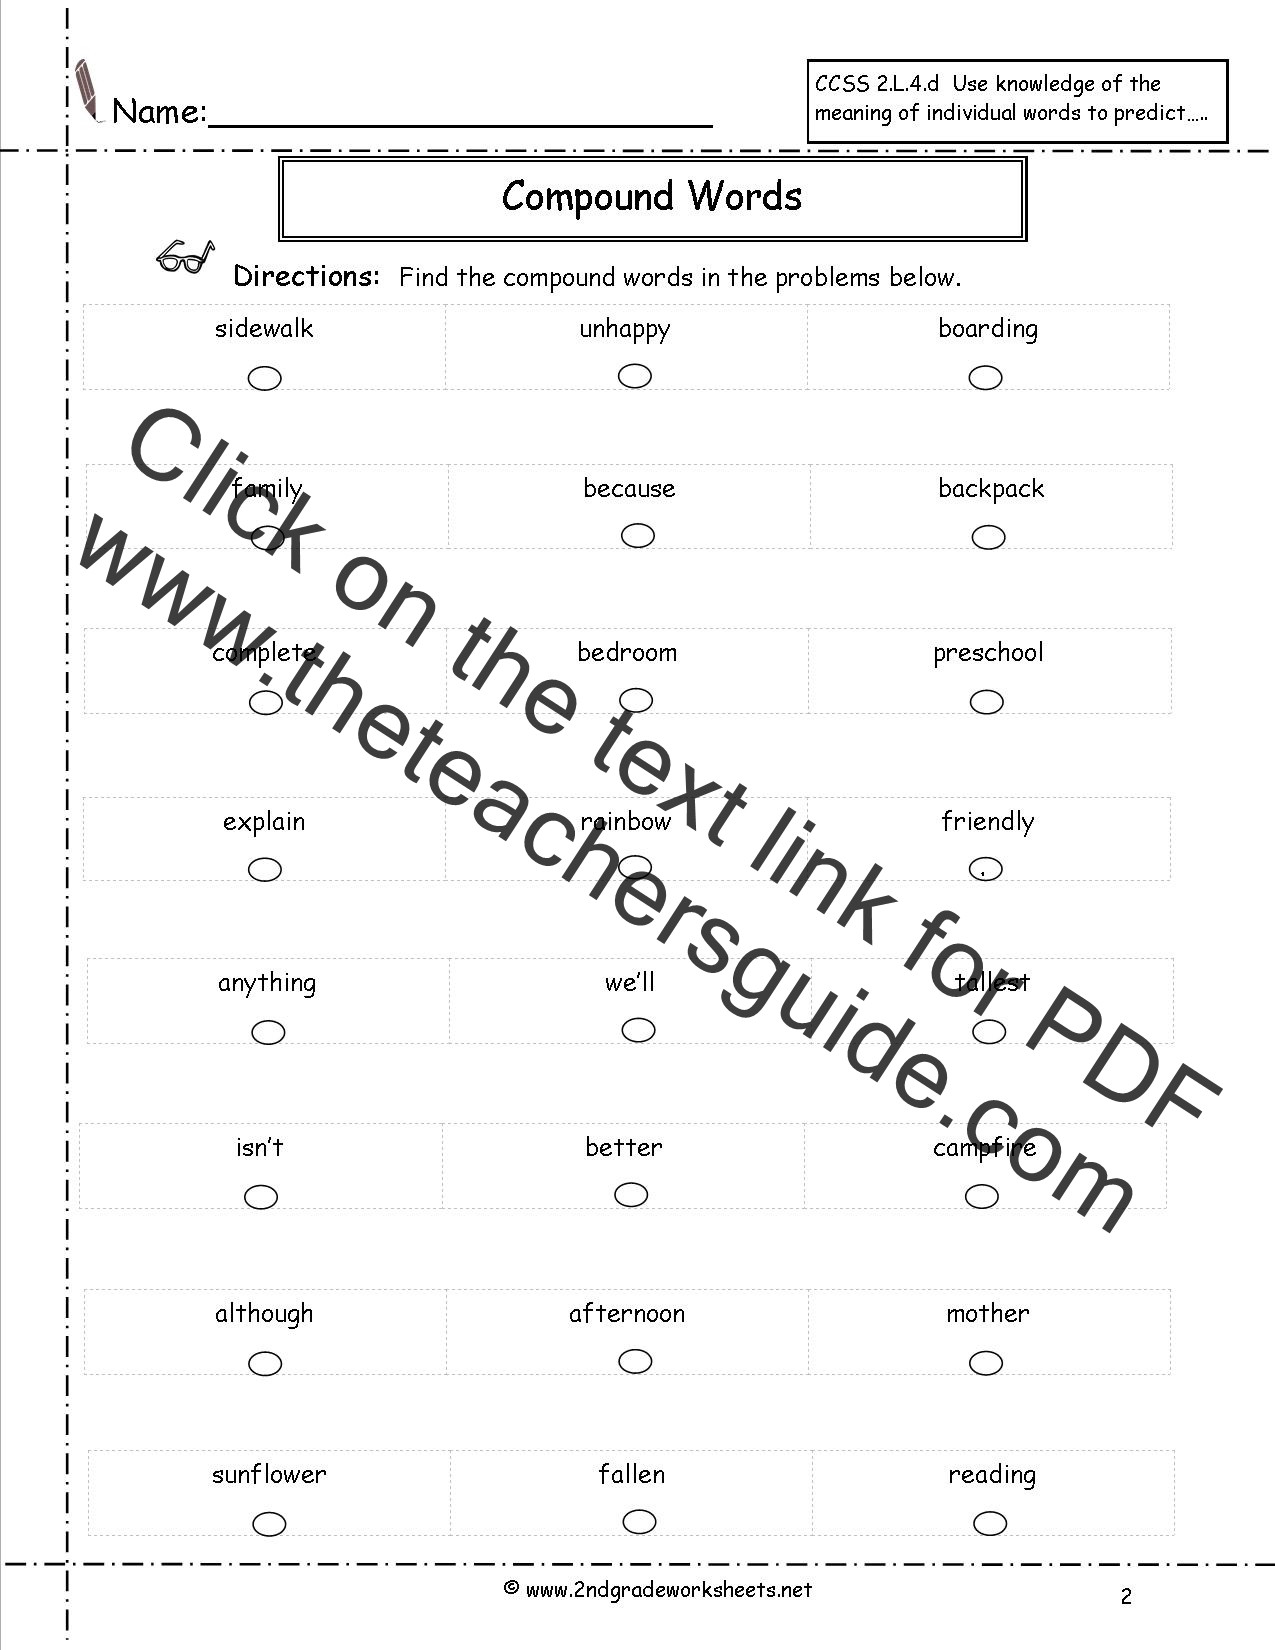 Free Printable Compound Word Worksheets Pound Words Worksheets